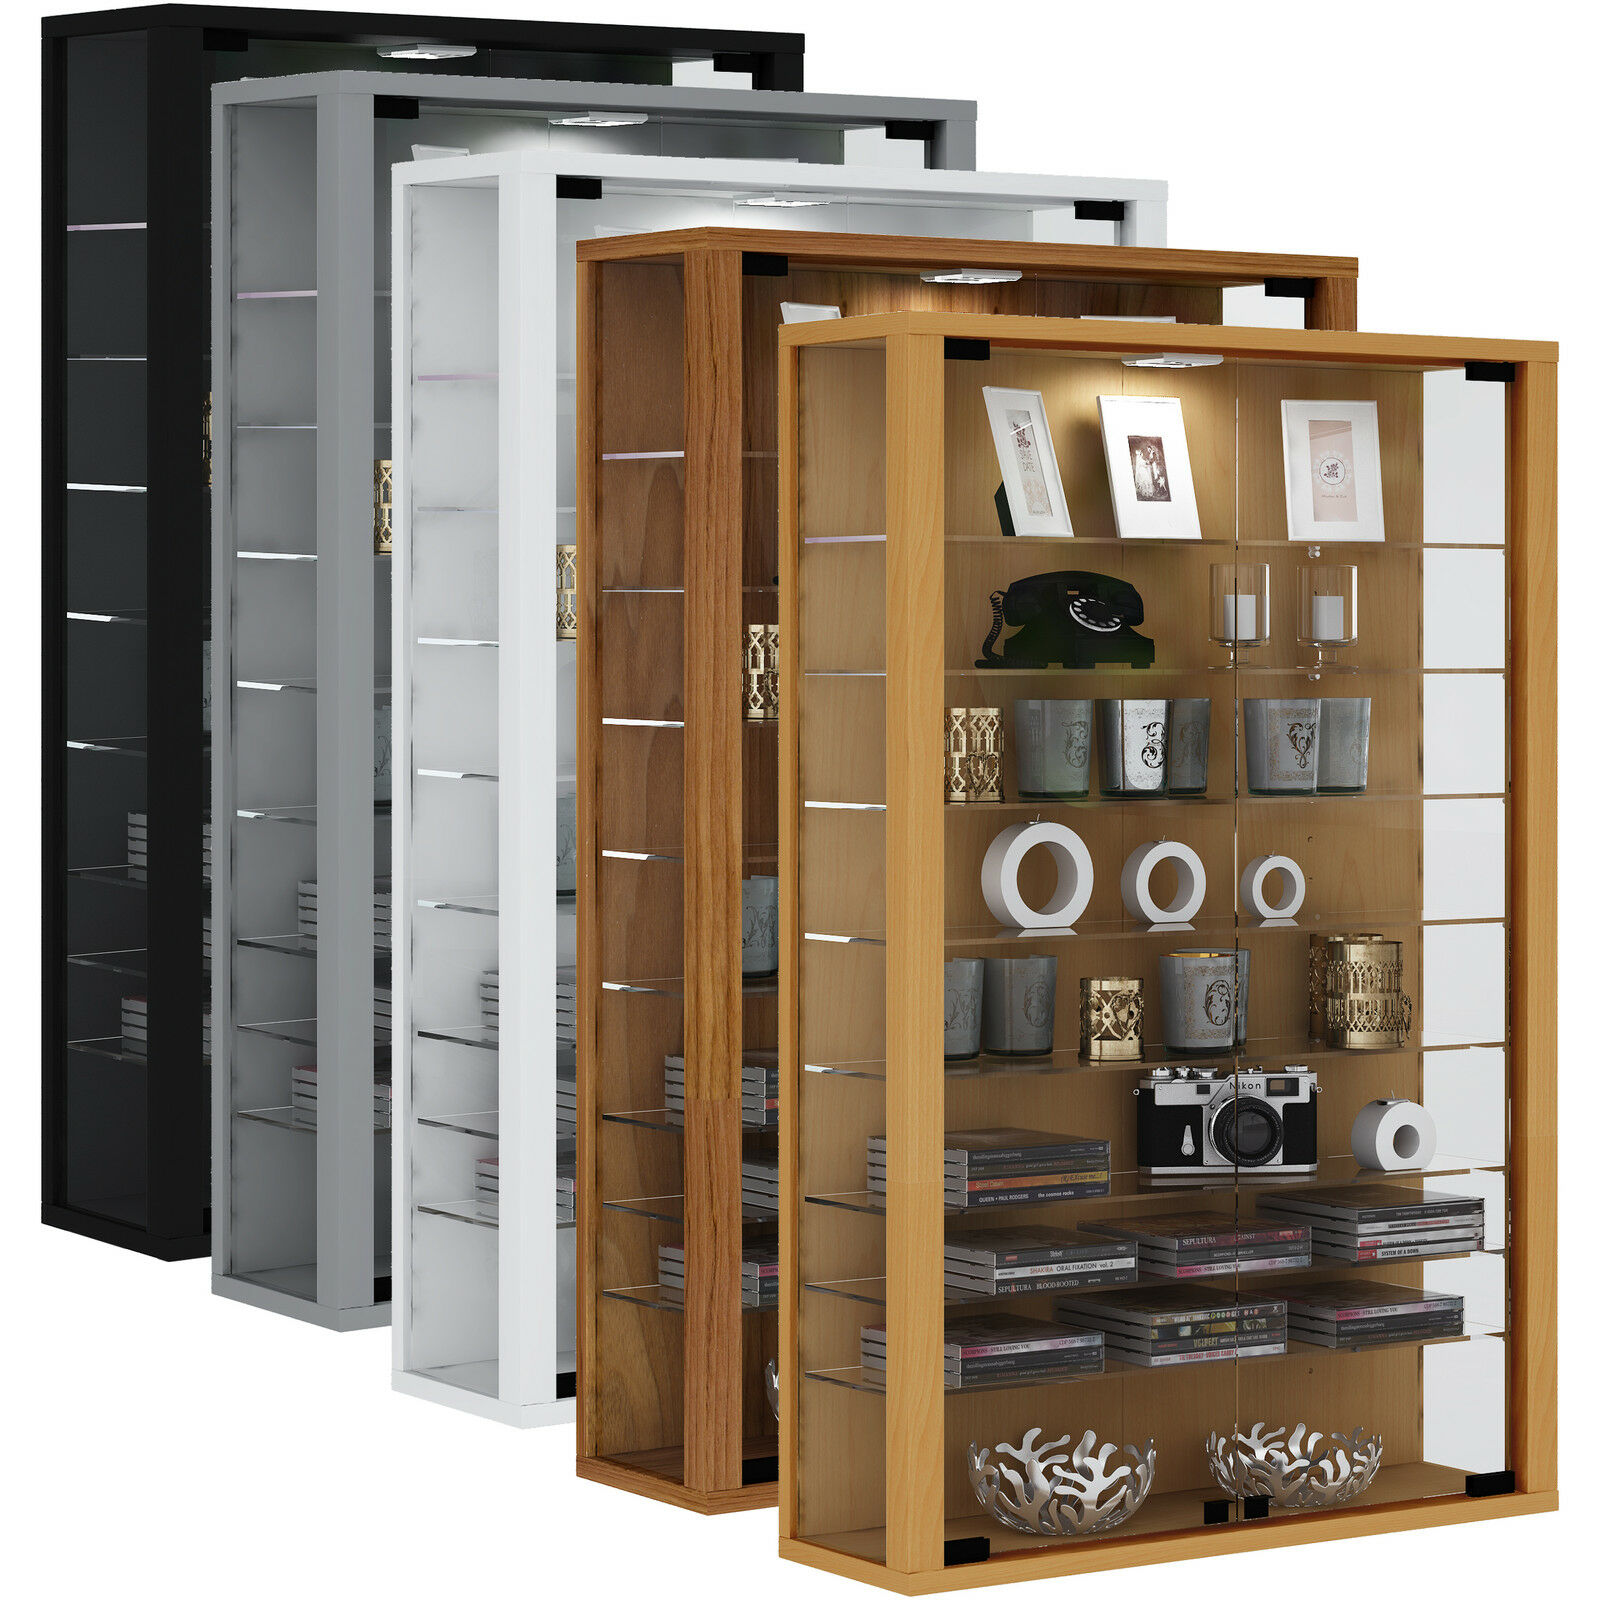 vcm wandvitrine sammelvitrine glasvitrine wand vitrine. Black Bedroom Furniture Sets. Home Design Ideas